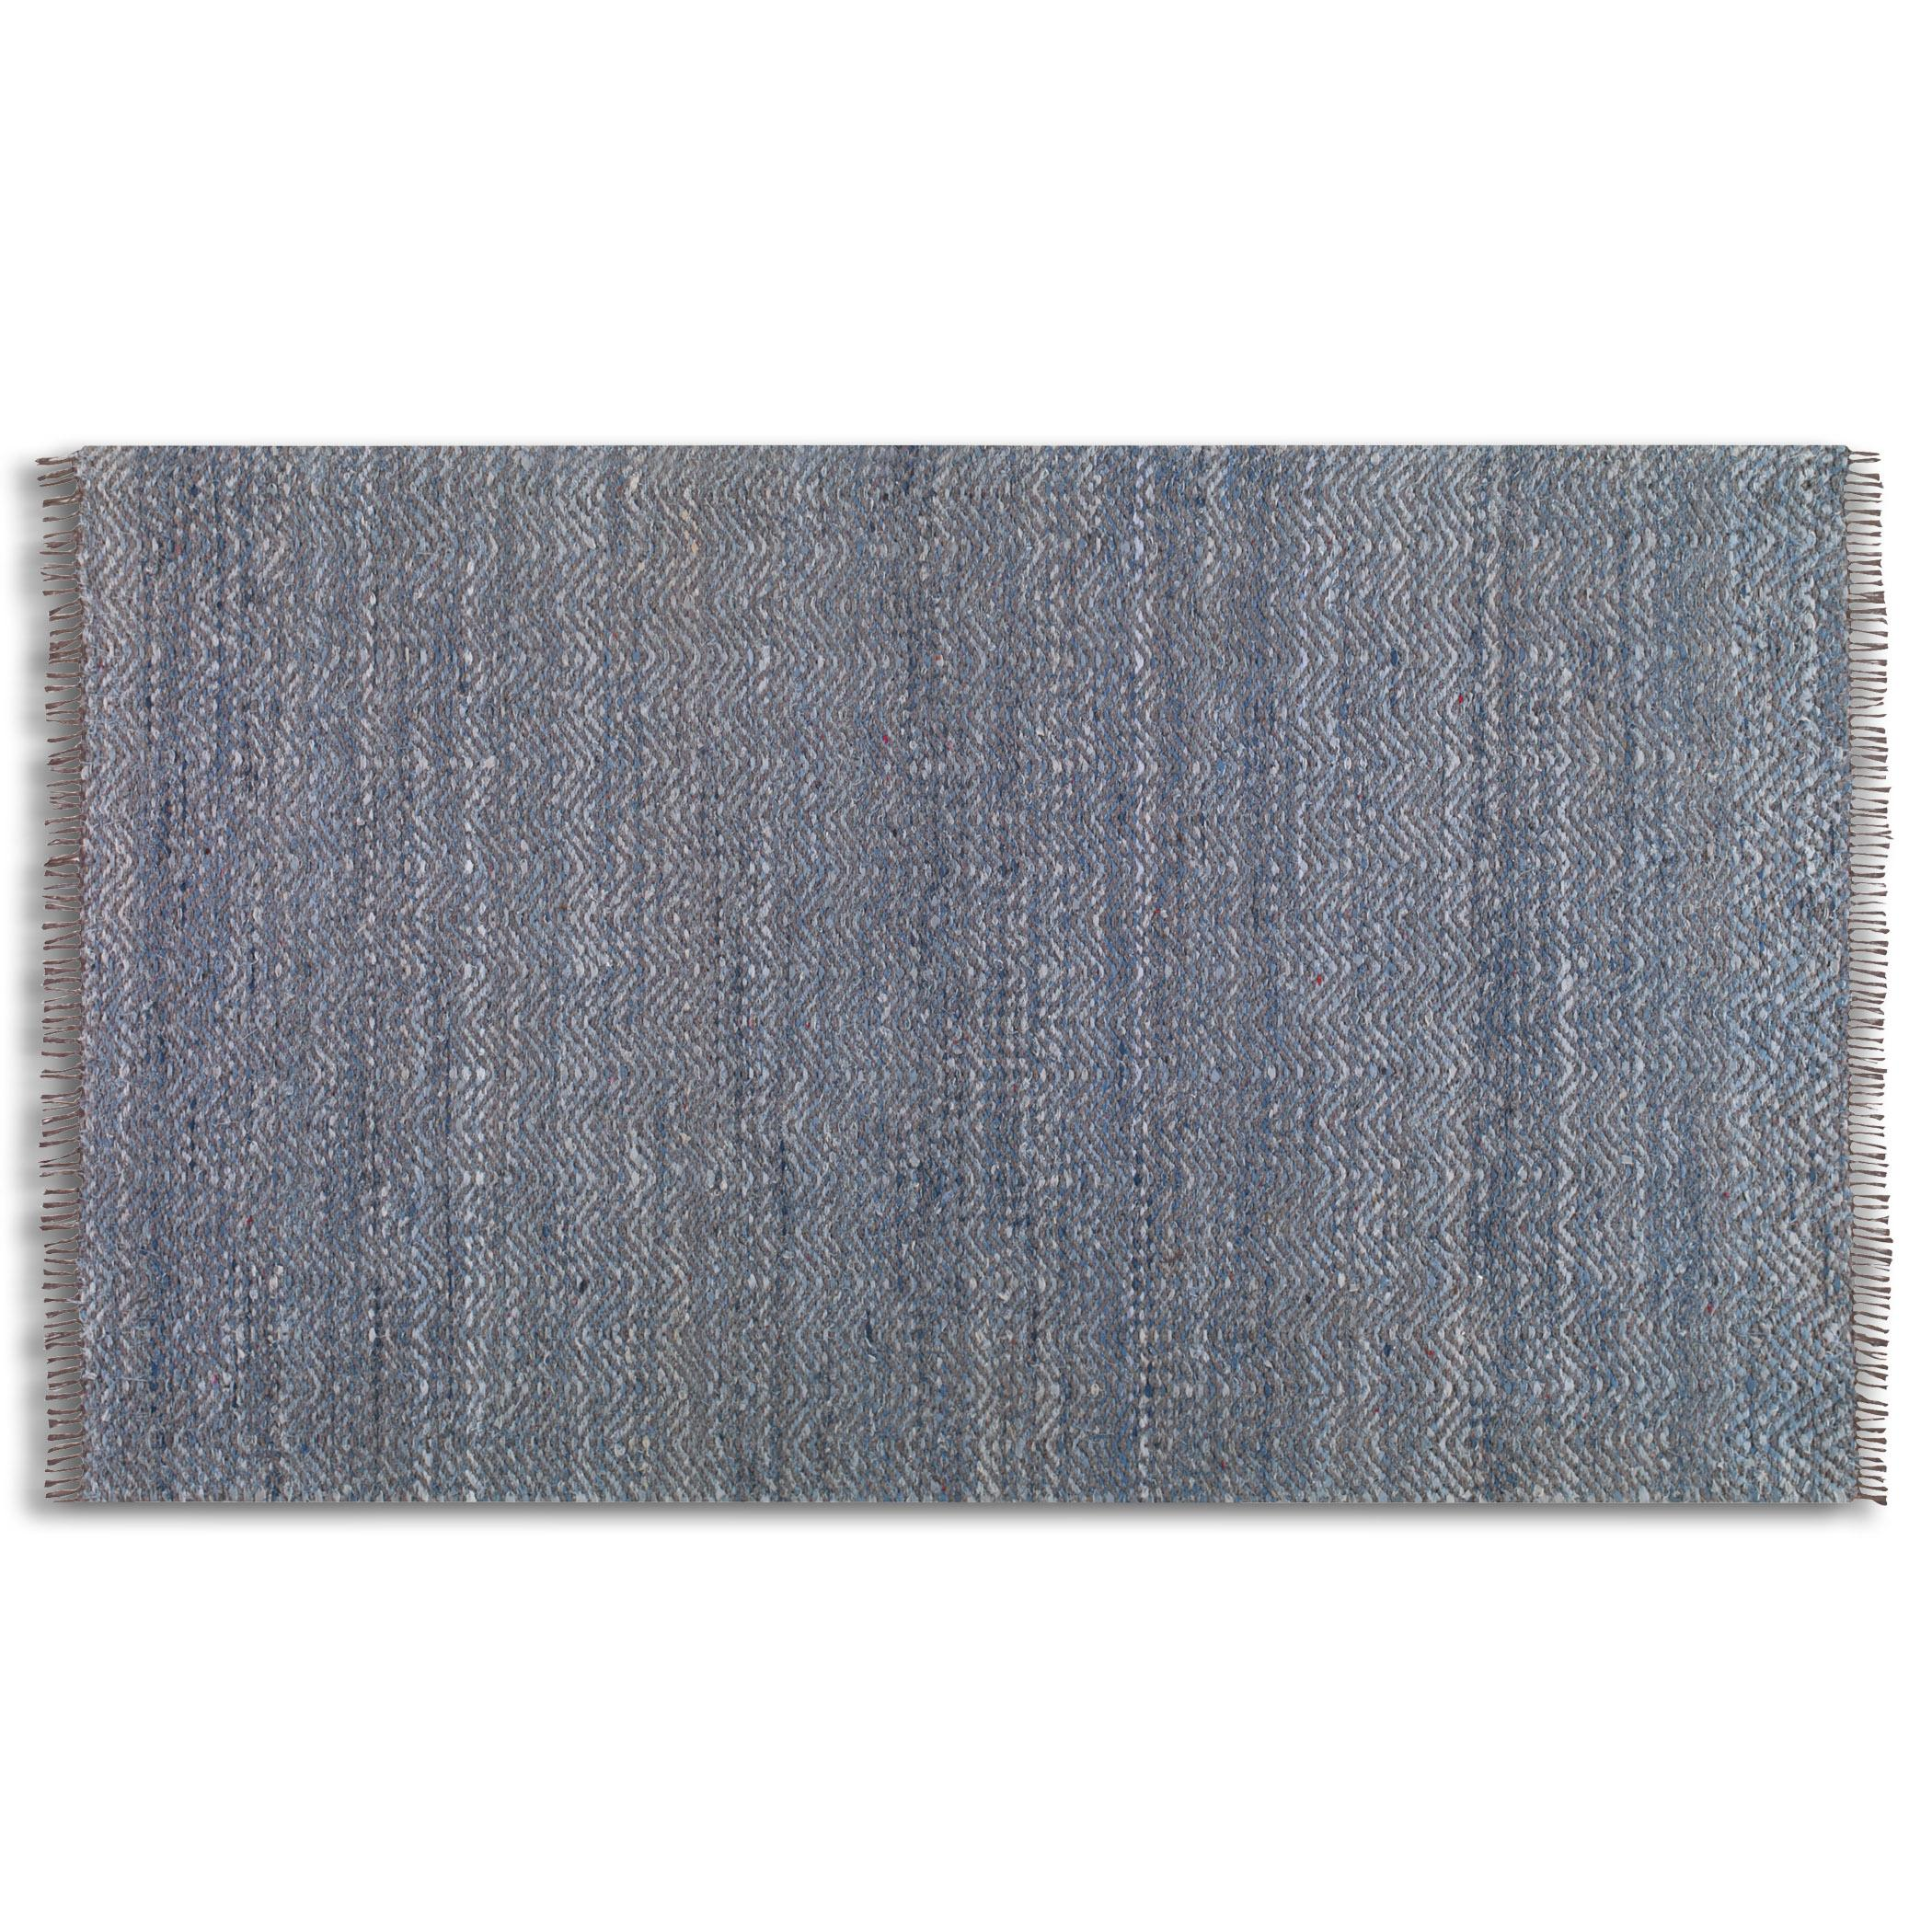 Uttermost Rugs Cascadia 8 X 10 Denim Rug - Item Number: 71048-8